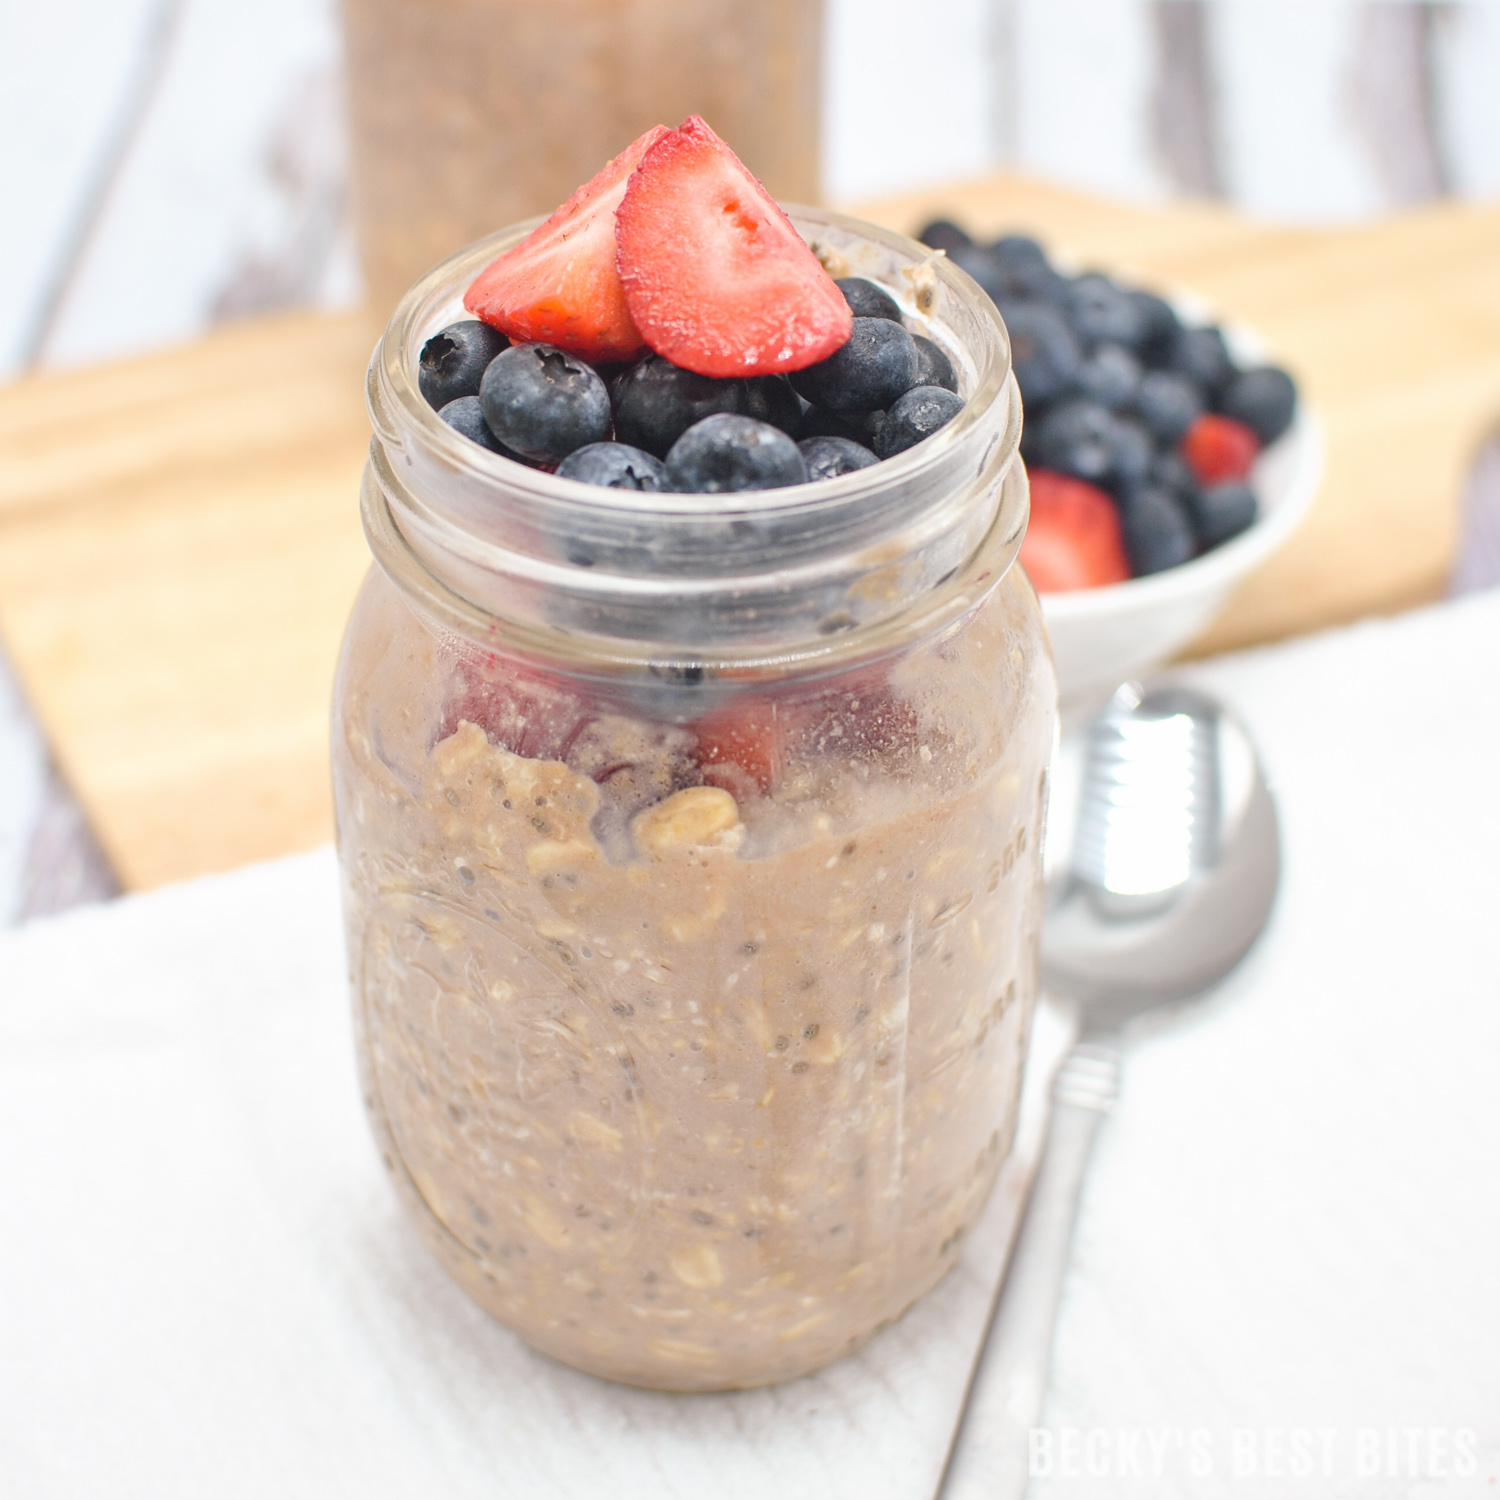 Berry Chocolate Protein Overnight Oats is a quick, easy & healthy breakfast recipe! Flexible, filling & portable, the options are endless for this on-the-go meal idea!! | beckysbestbites.com